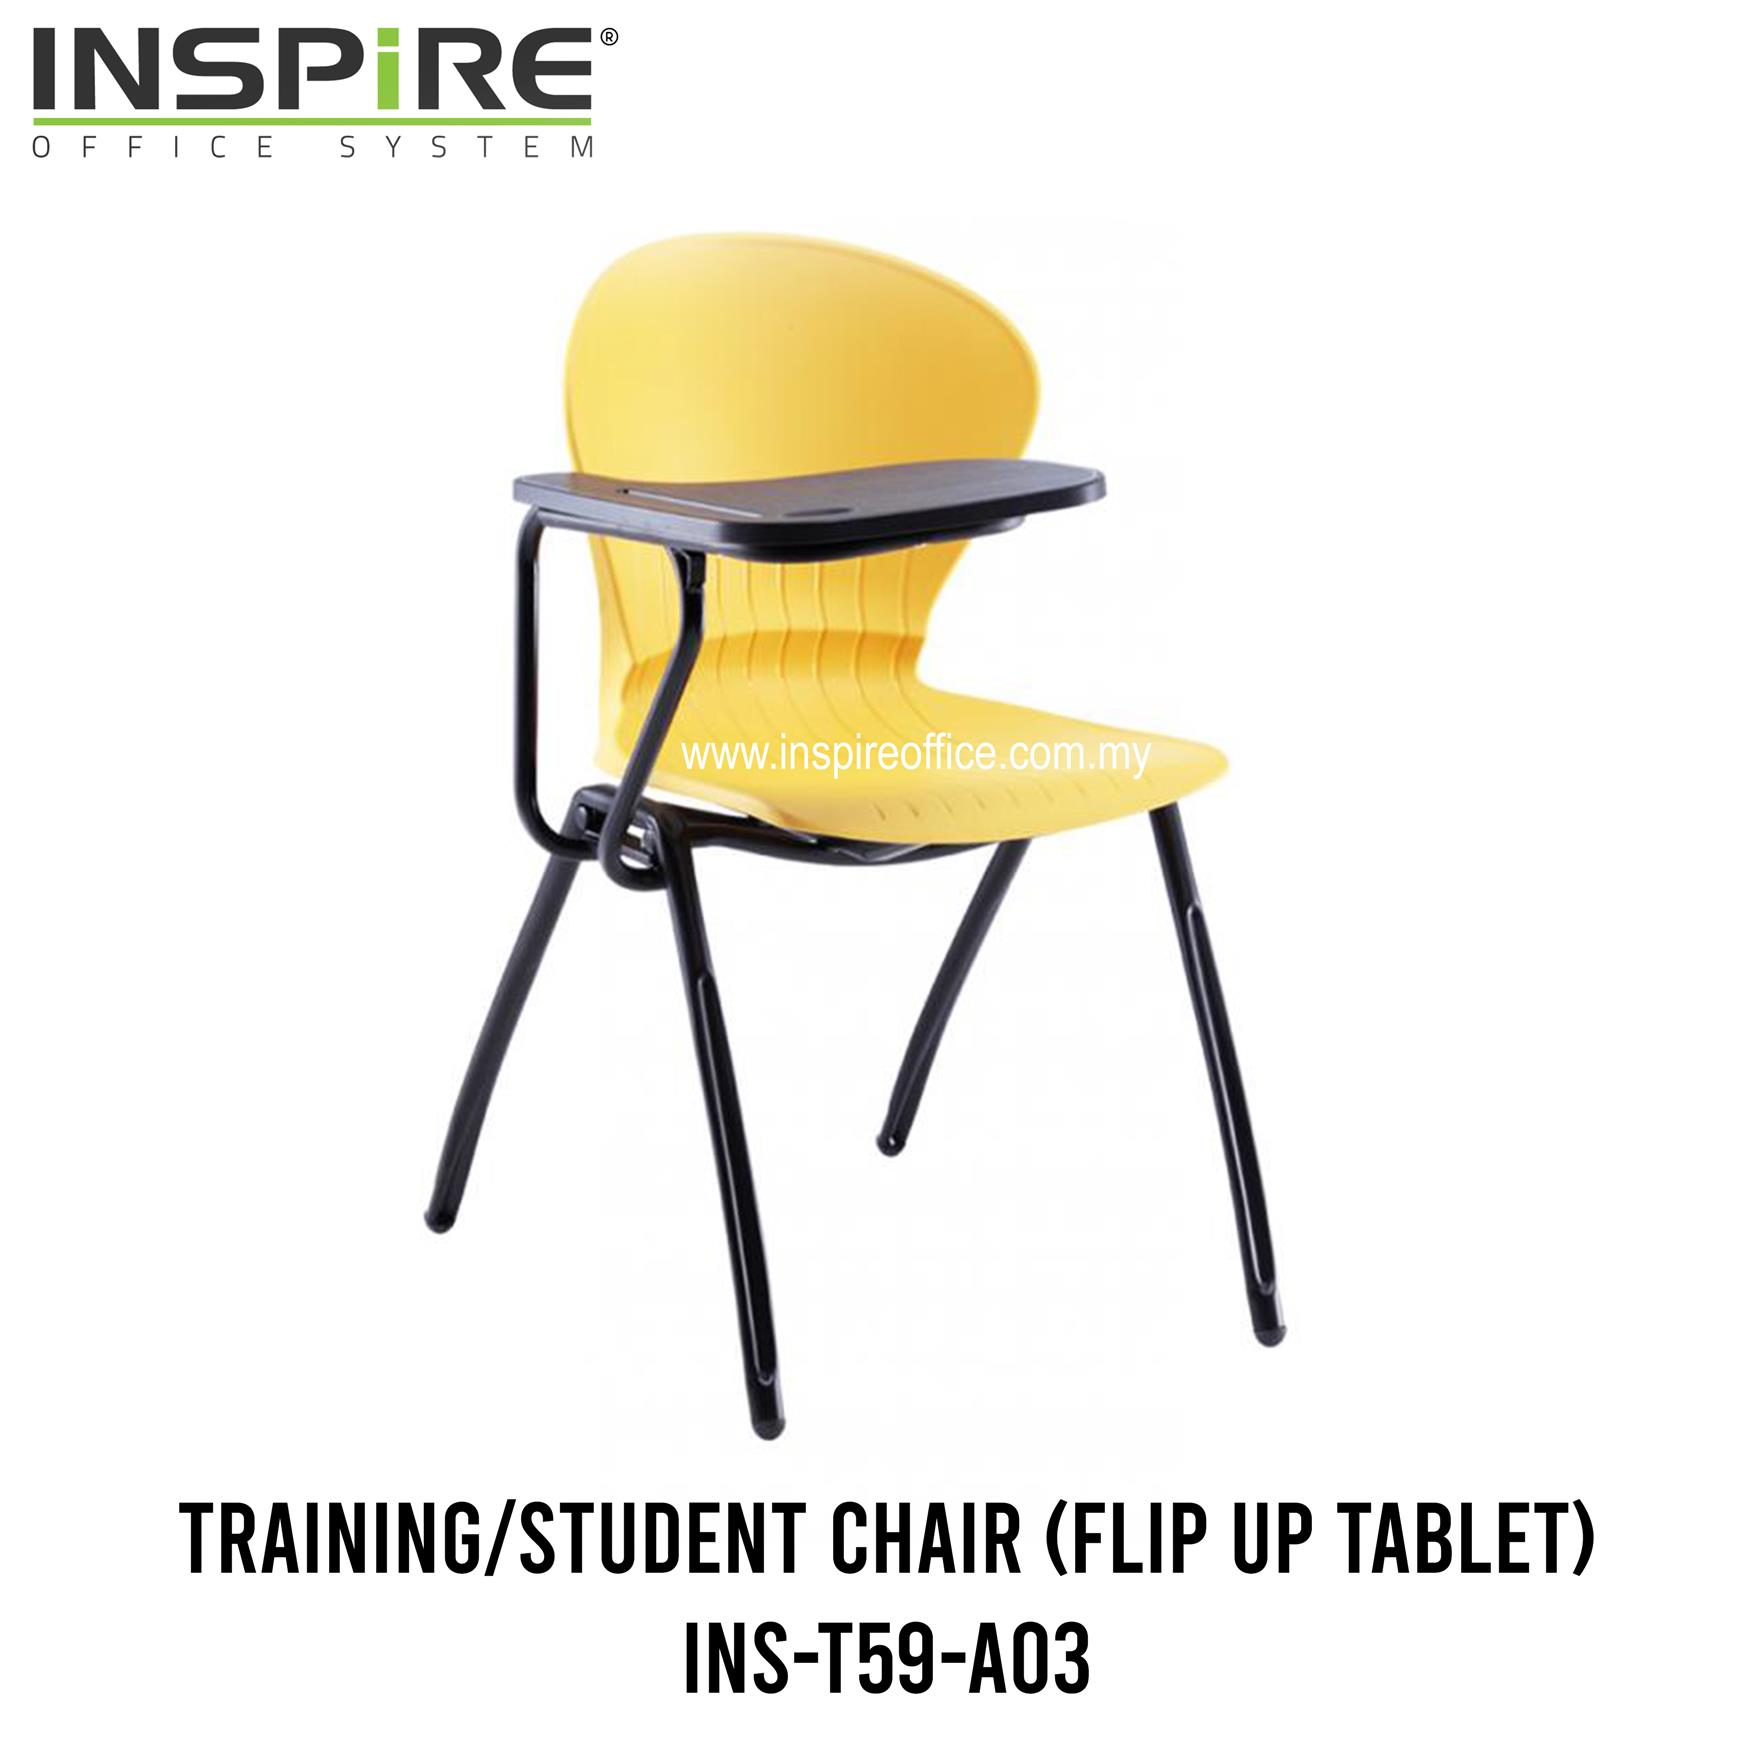 INS-T59-A03 Training/Student Chair (Flip Up Tablet)